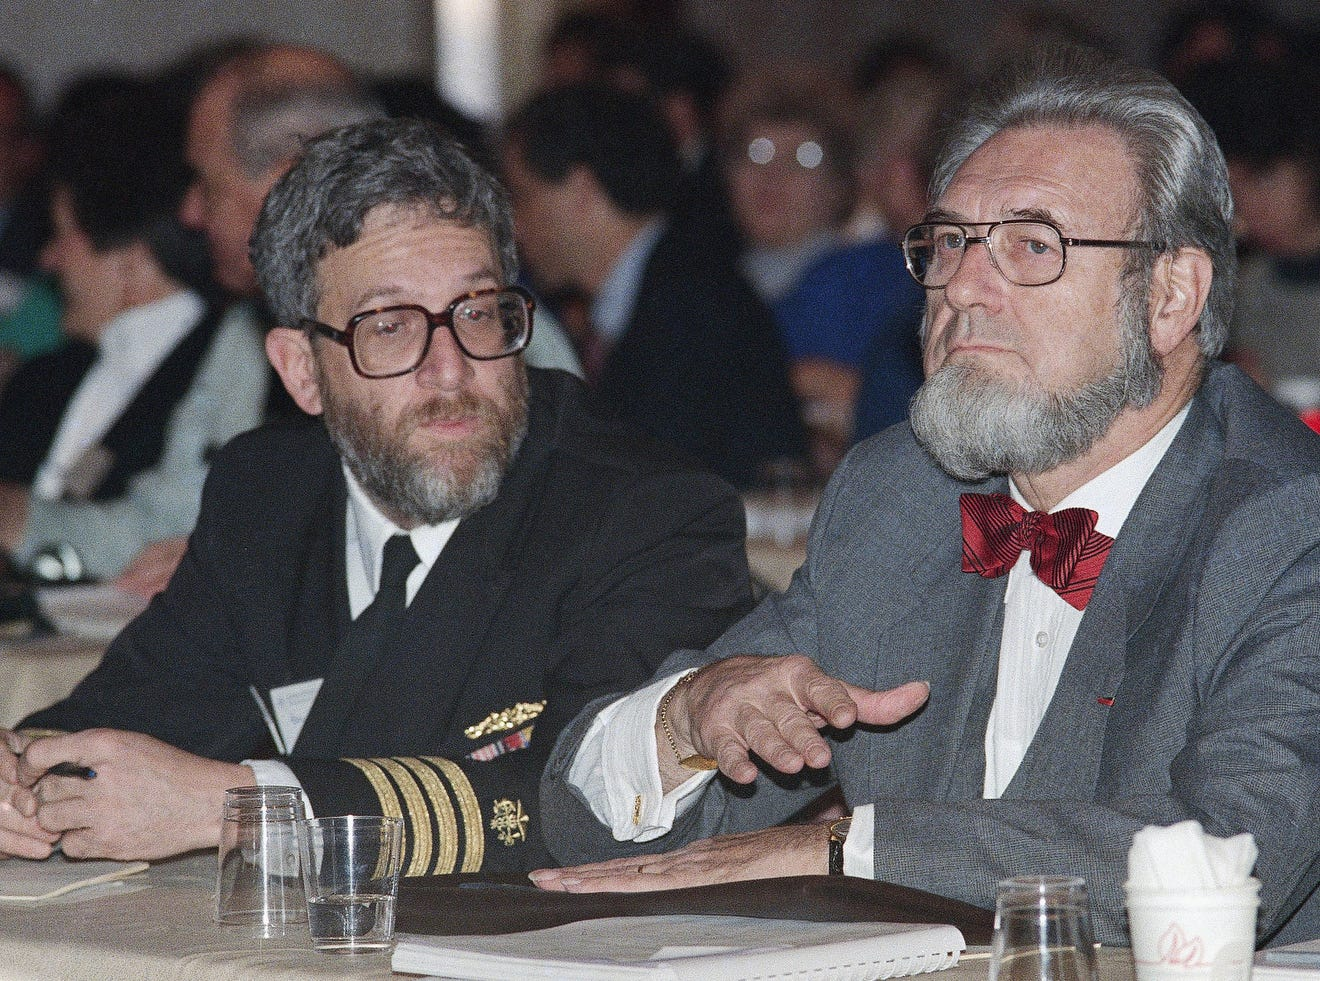 U.S. Surgeon General C. Everett Koop, right,  gestures, on Dec. 1, 1988, in Boston as he addresses a meeting of the American Society of Law & Medicine and other area health organizations on the fight against AIDS into the next decade, as part of World AIDS Day, designated by the World Health Organization.